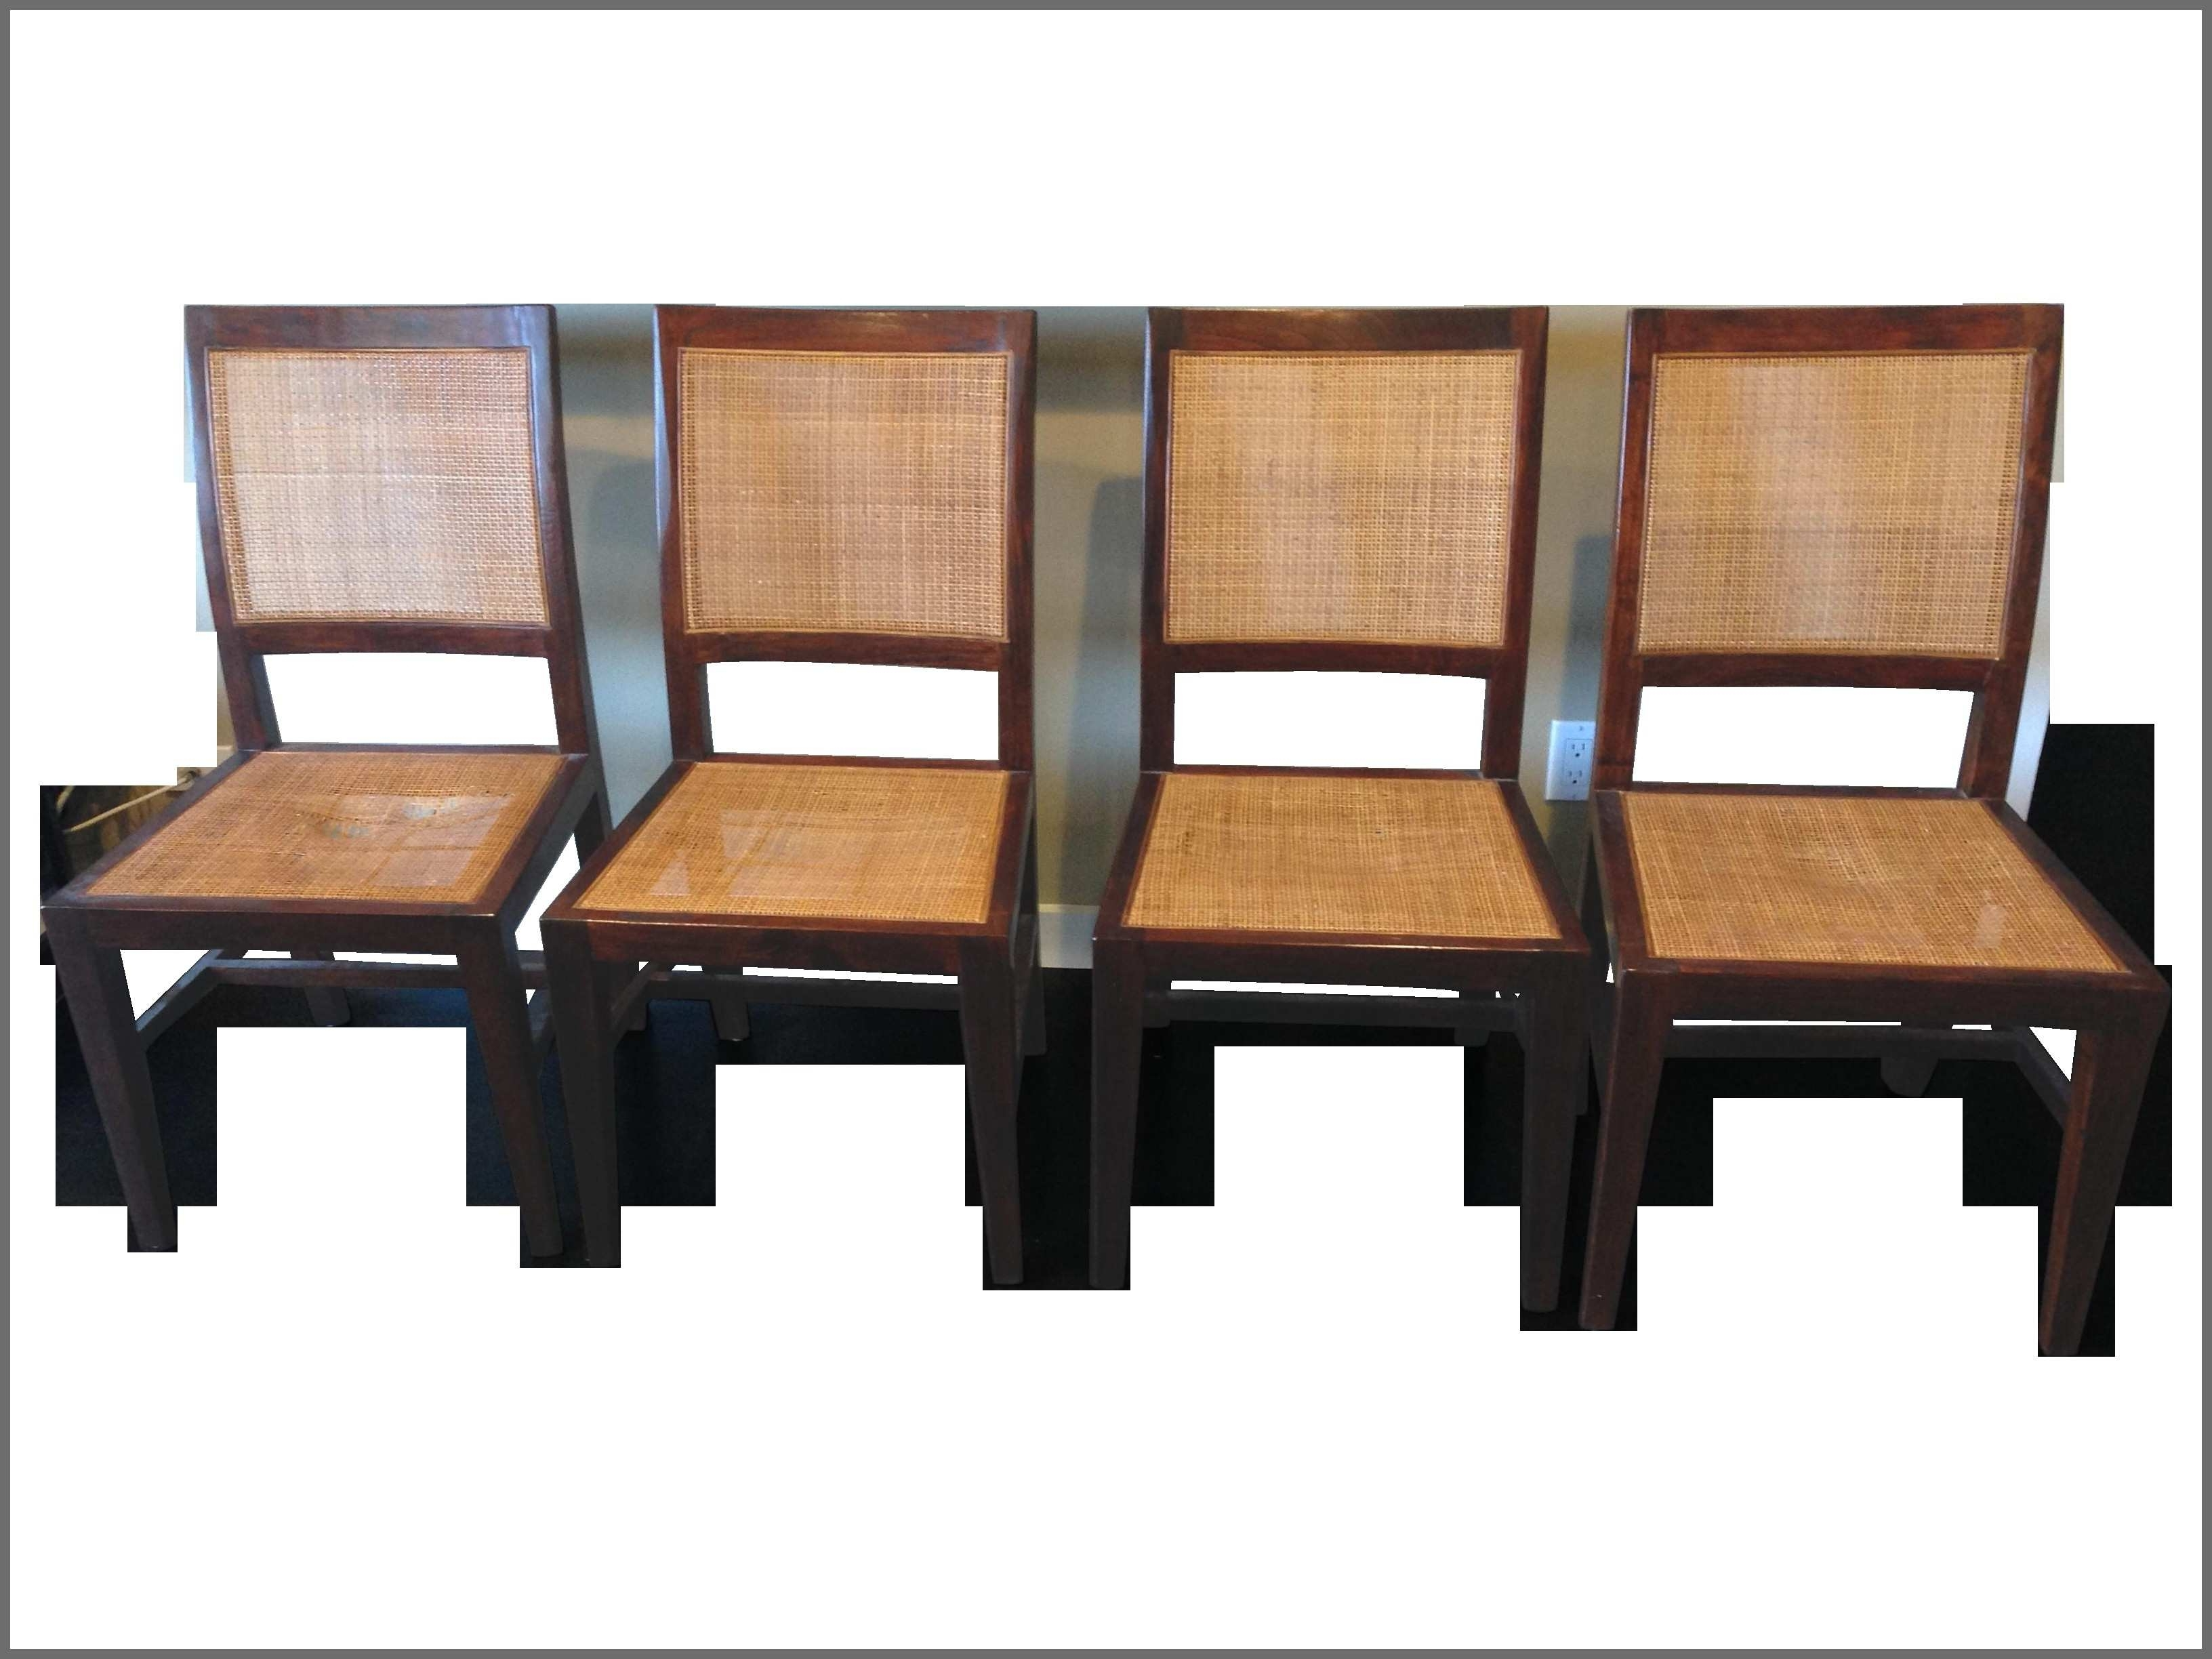 Ebay Roof Racks Best Of Crate Barrel Cane Dining Chairs Set Of 4 pertaining to Most Recent Ebay Dining Chairs